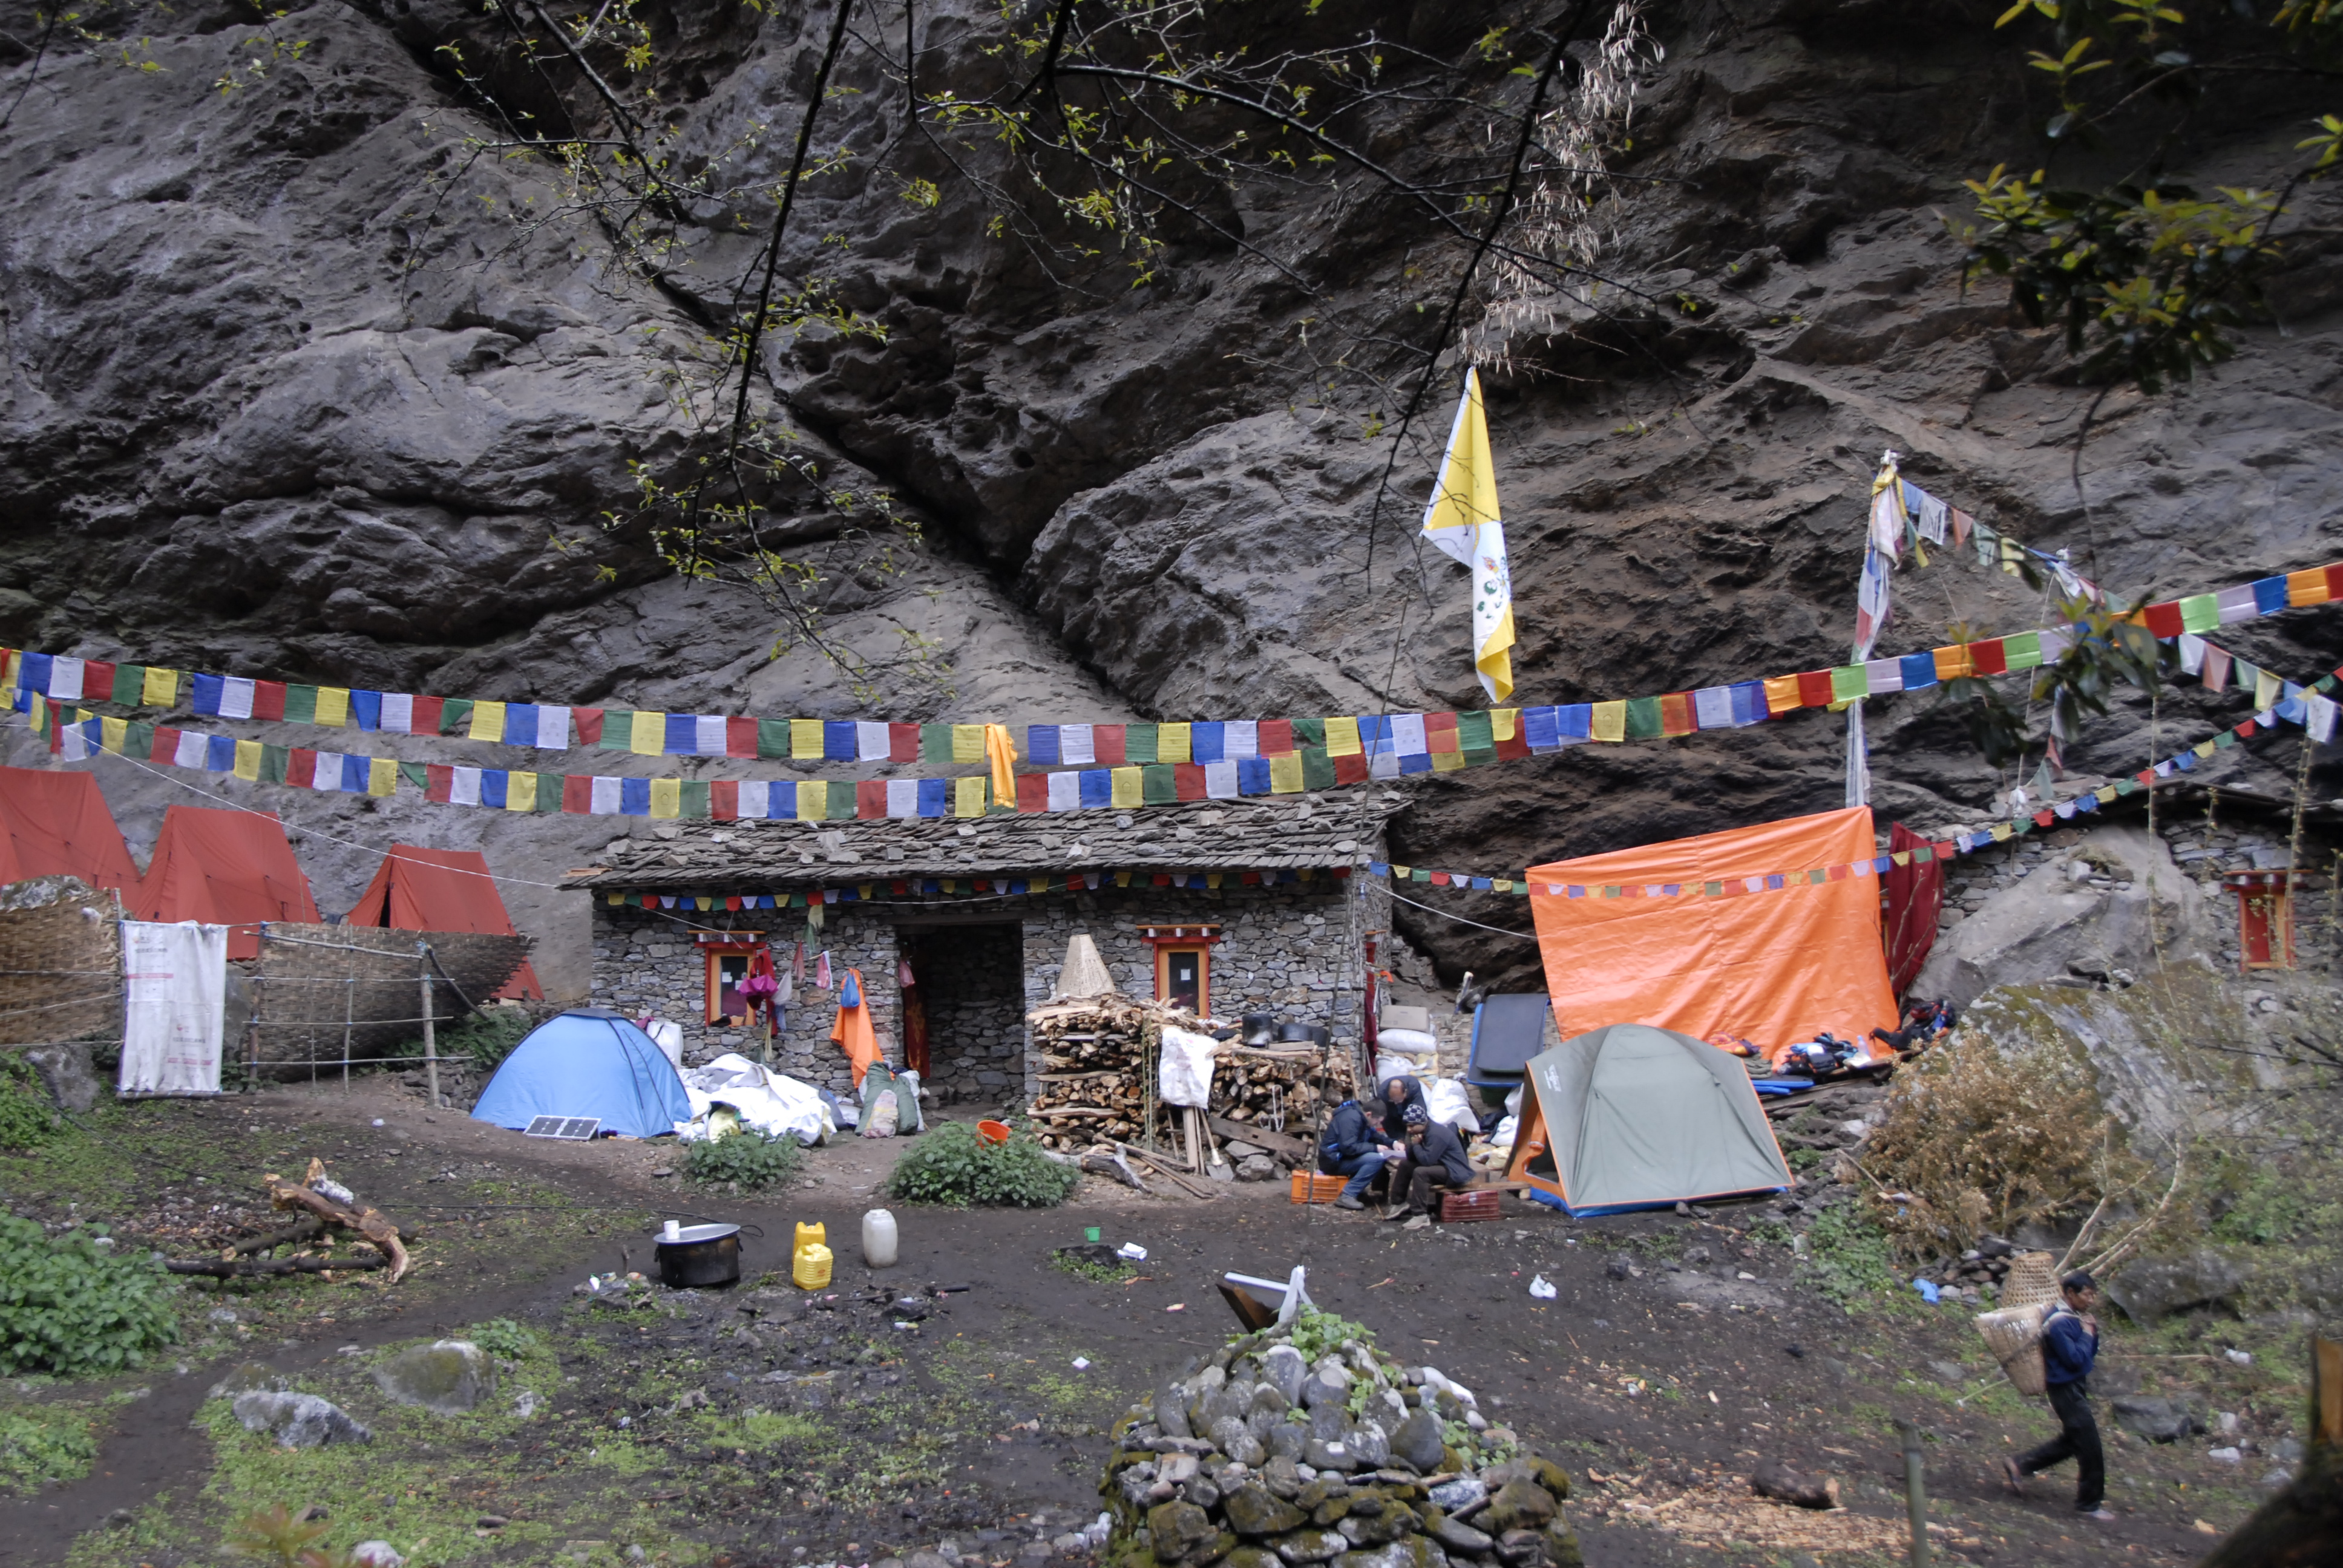 The retreat where lamas provided us with food and shelter (by Prof. Dr. Klaus Katzensteiner).